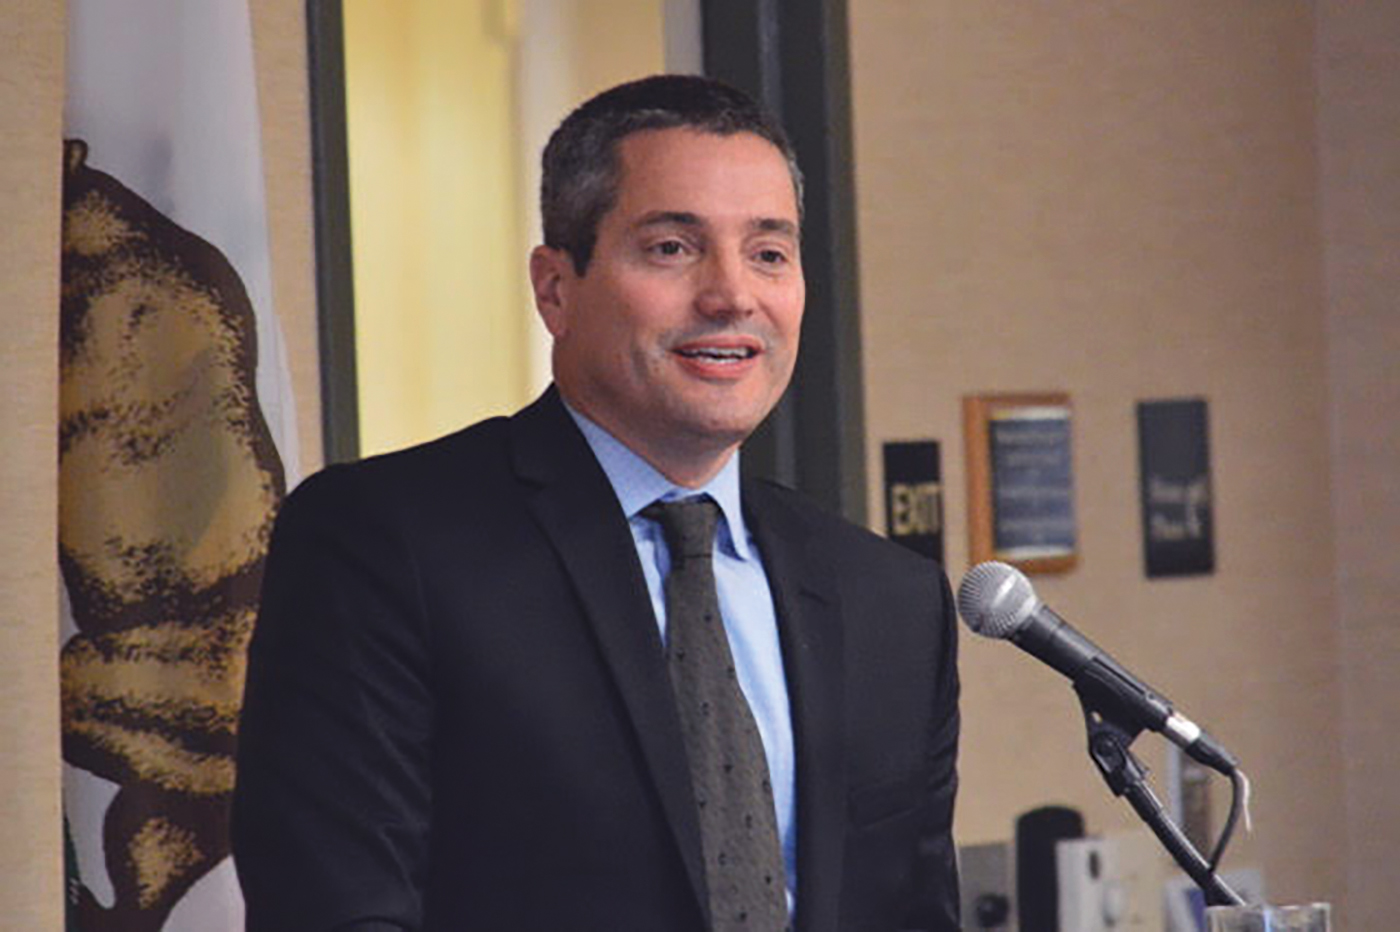 Wade Crowfoot, the states' Secretary for Natural Resources, explained to members of the California Black Chamber of Commerce how the governor's proposed water tax would work. (Antonio R. Harvey photo)